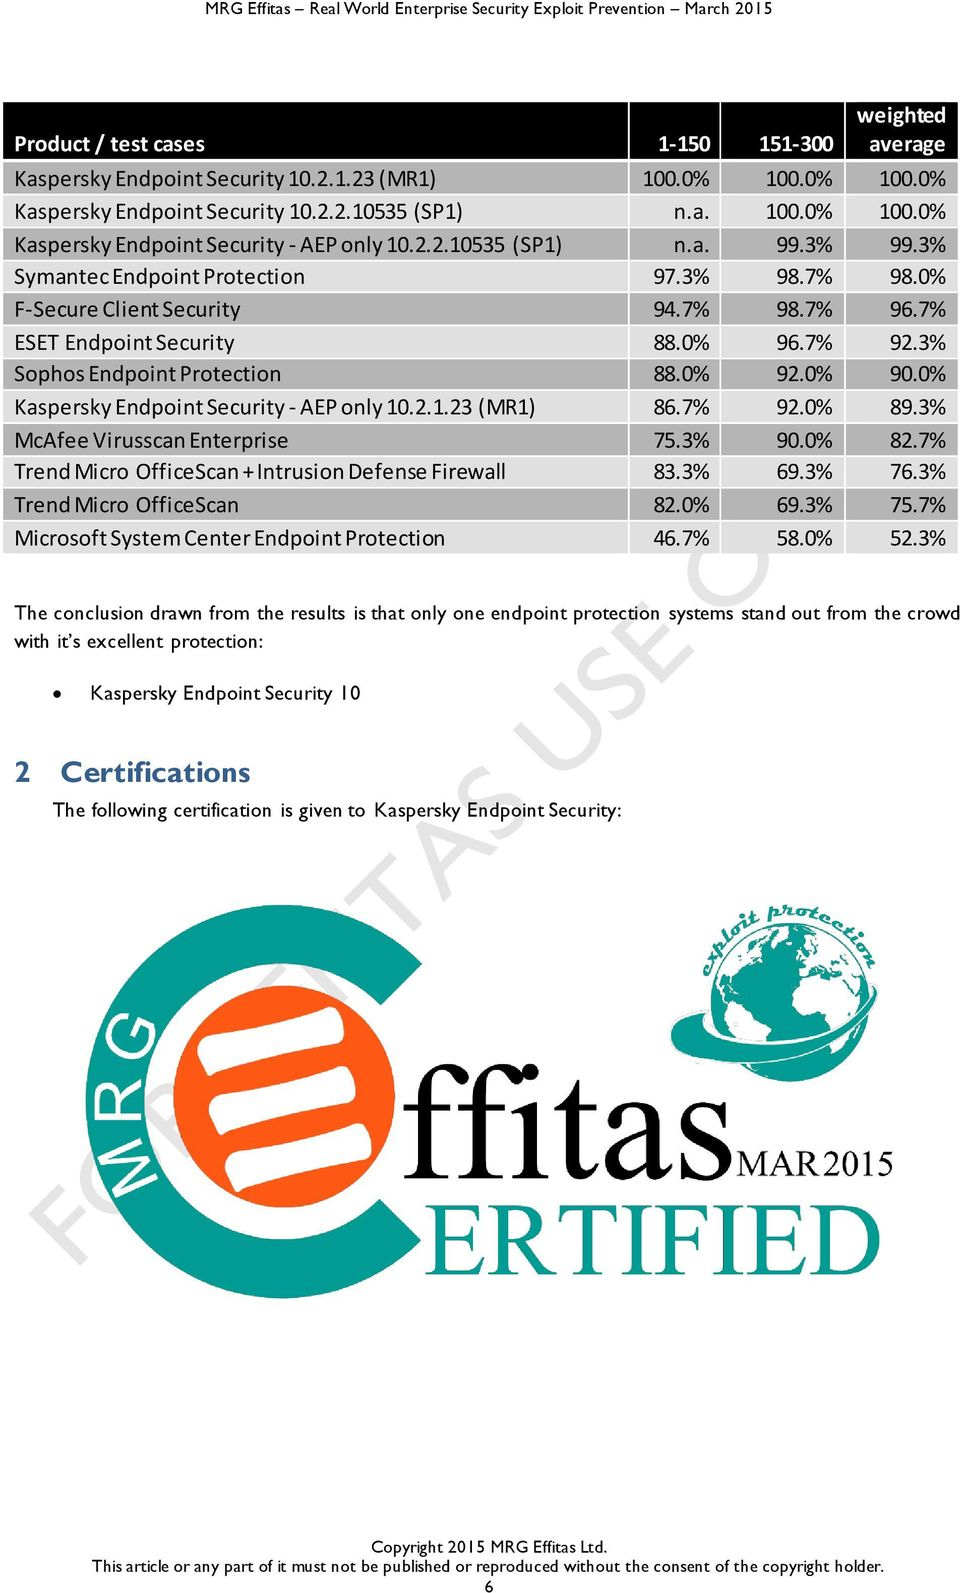 0% 90.0% Kaspersky Endpoint Security - AEP only 10.2.1.23 (MR1) 86.7% 92.0% 89.3% McAfee Virusscan Enterprise 75.3% 90.0% 82.7% Trend Micro OfficeScan + Intrusion Defense Firewall 83.3% 69.3% 76.